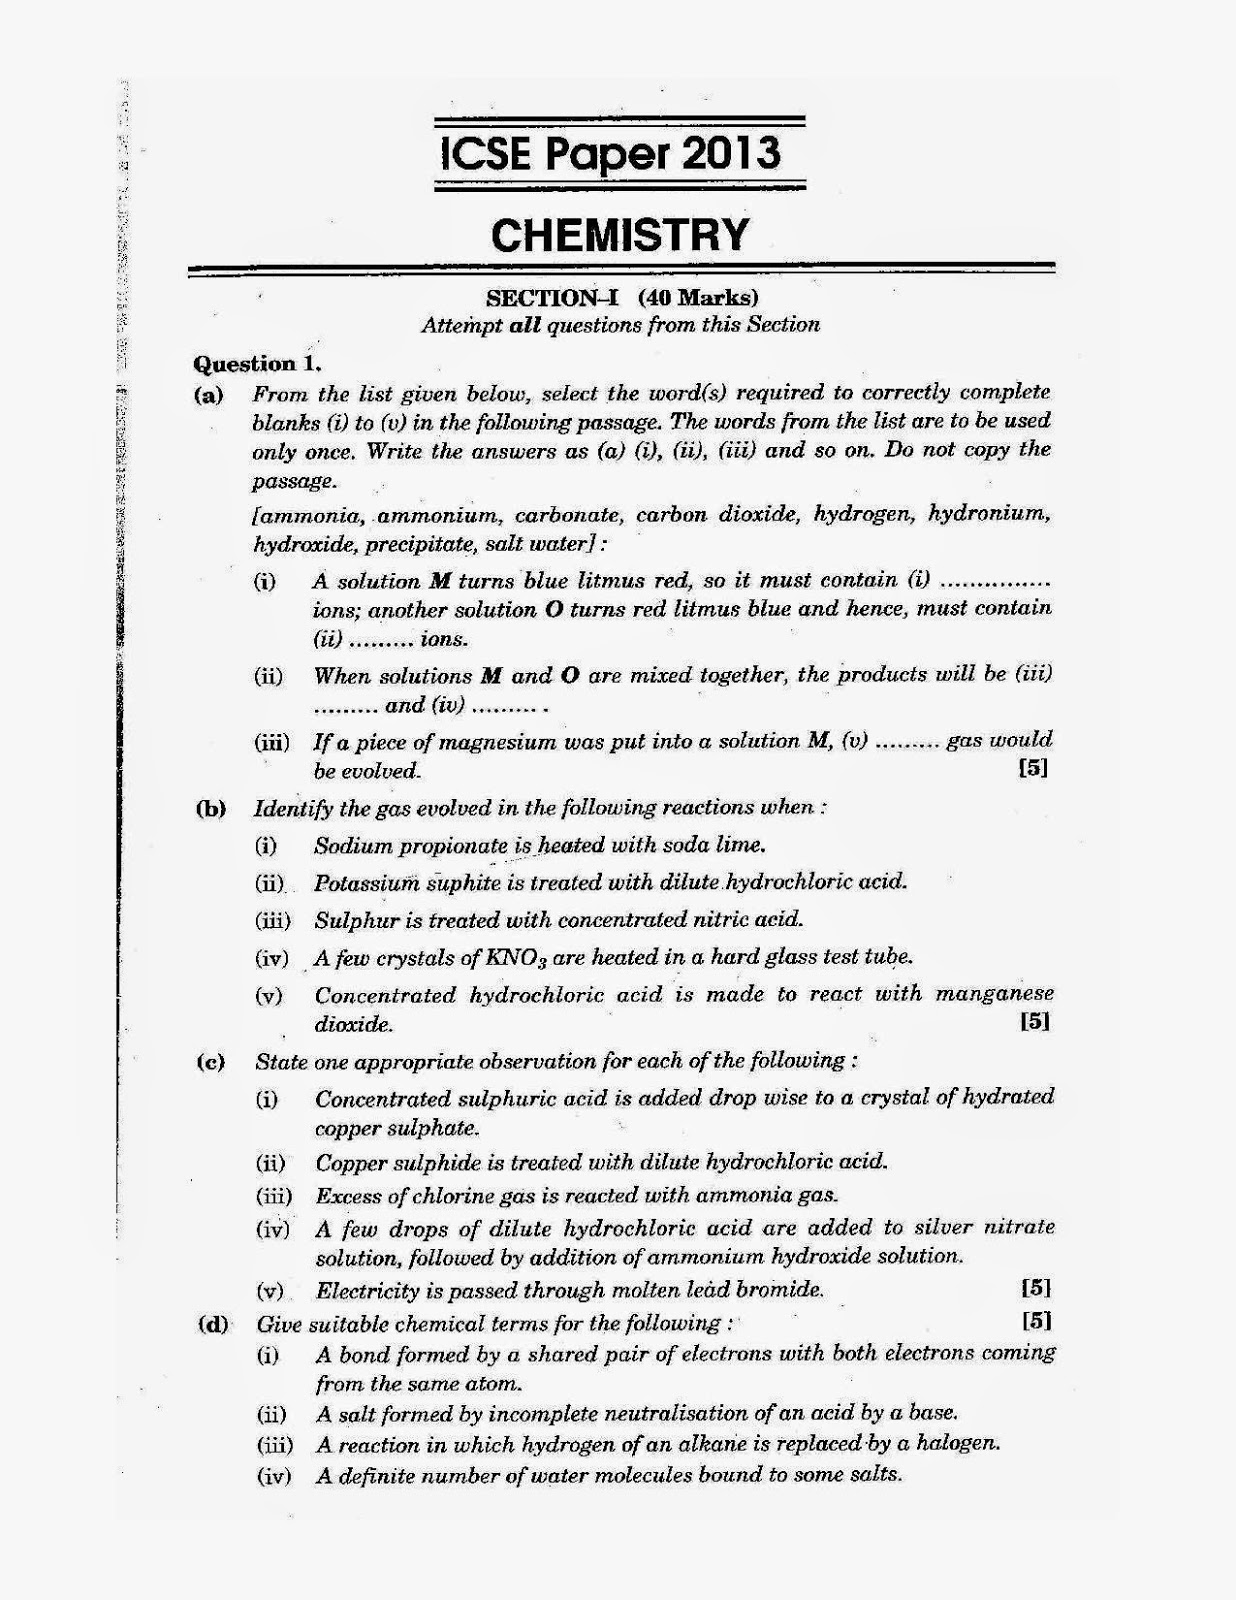 icse class 10th chemistry solved question paper 2013